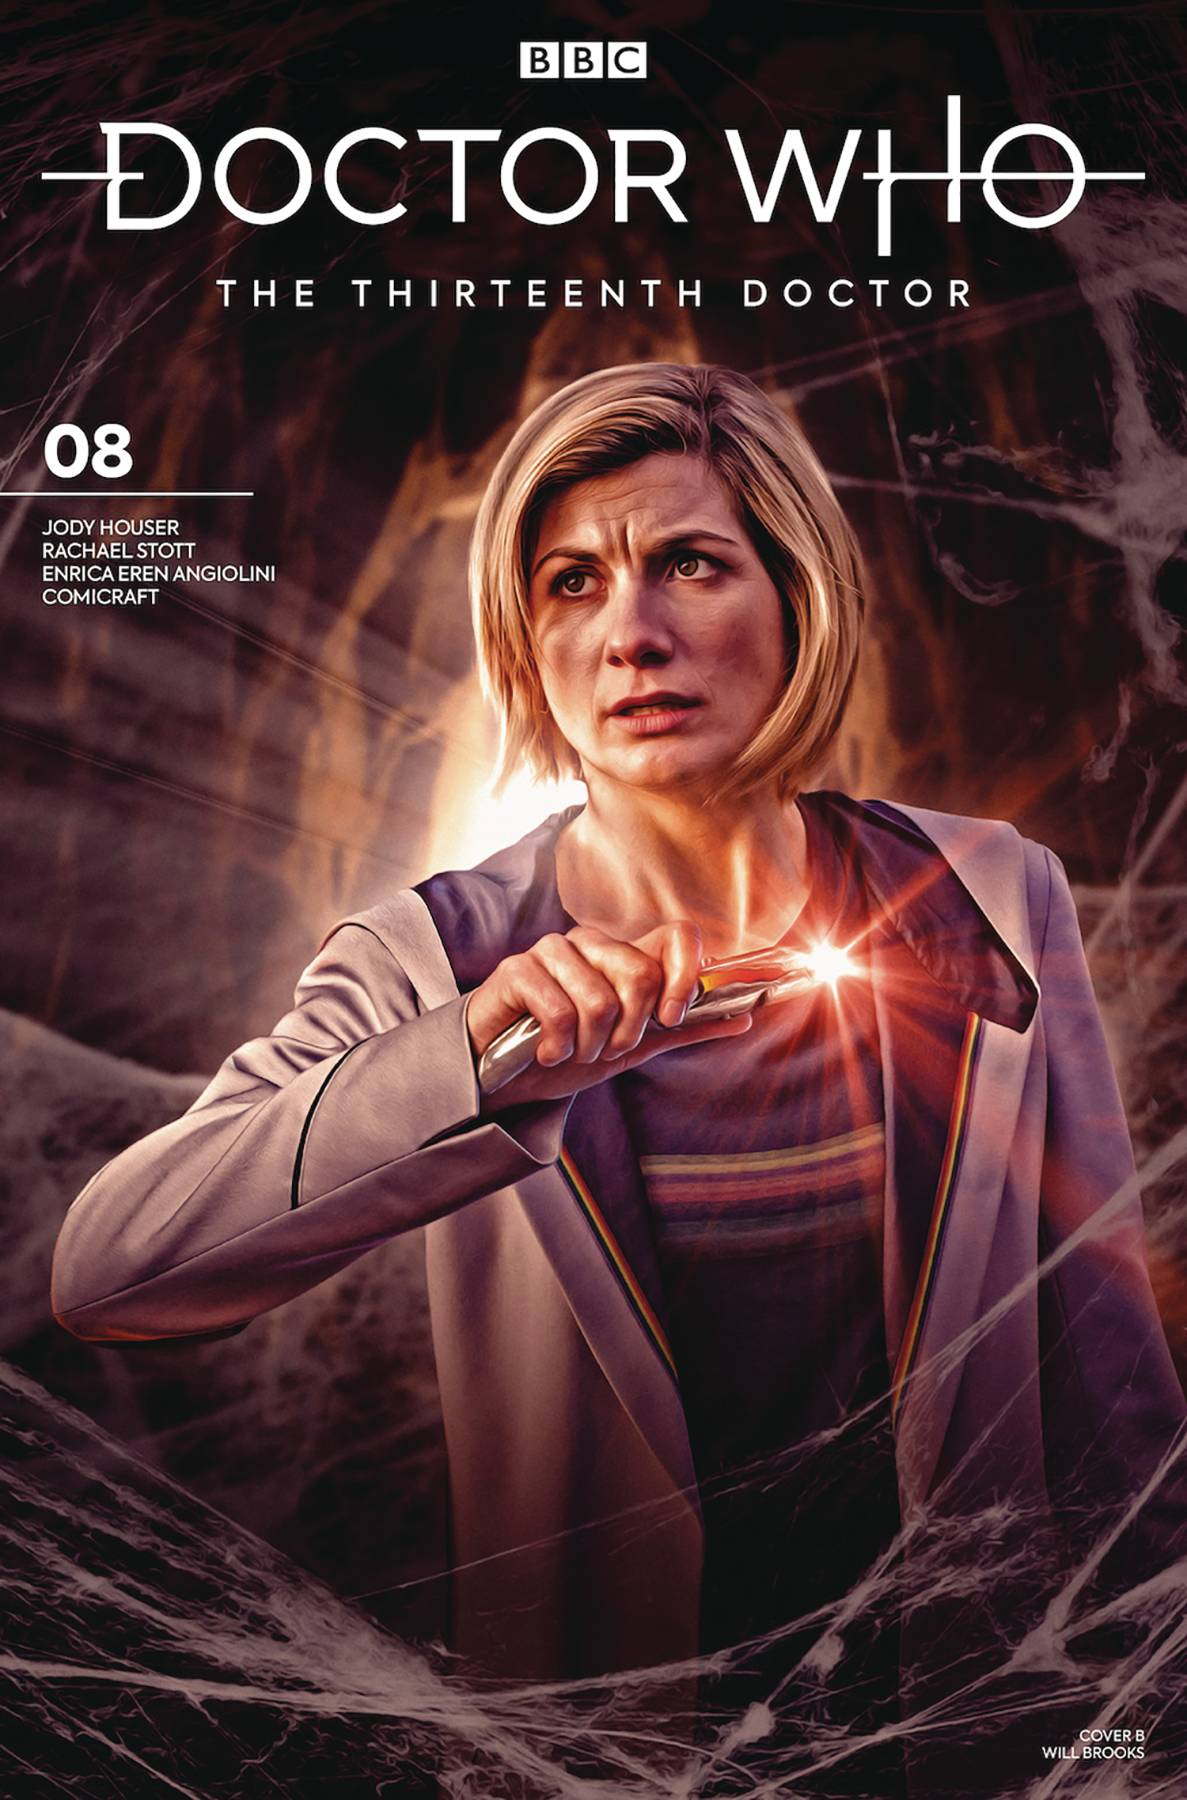 DOCTOR WHO 13TH 8 CVR B PHOTO.jpg